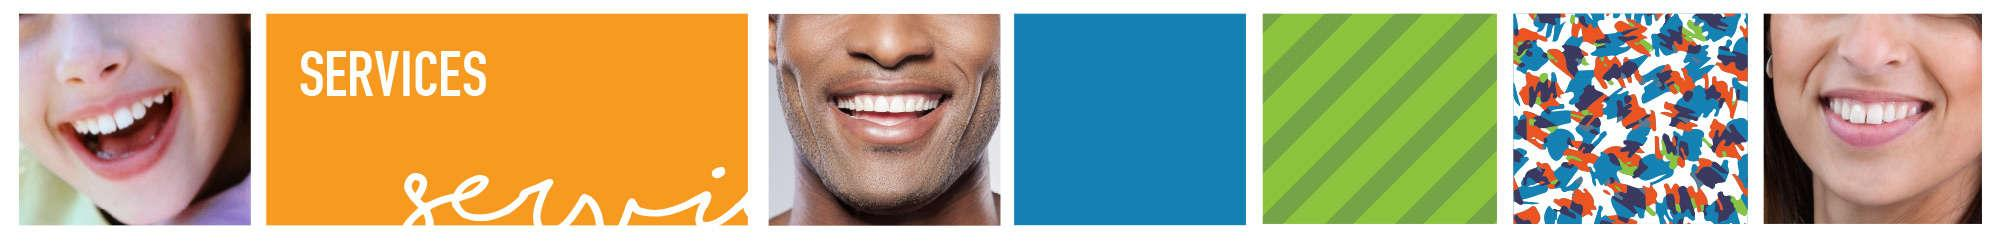 Services-header_02-Wichita Family Dentistry-General Dentistry-Invisalign-Dr. Barker-Smiles by Design-Wichita, KS